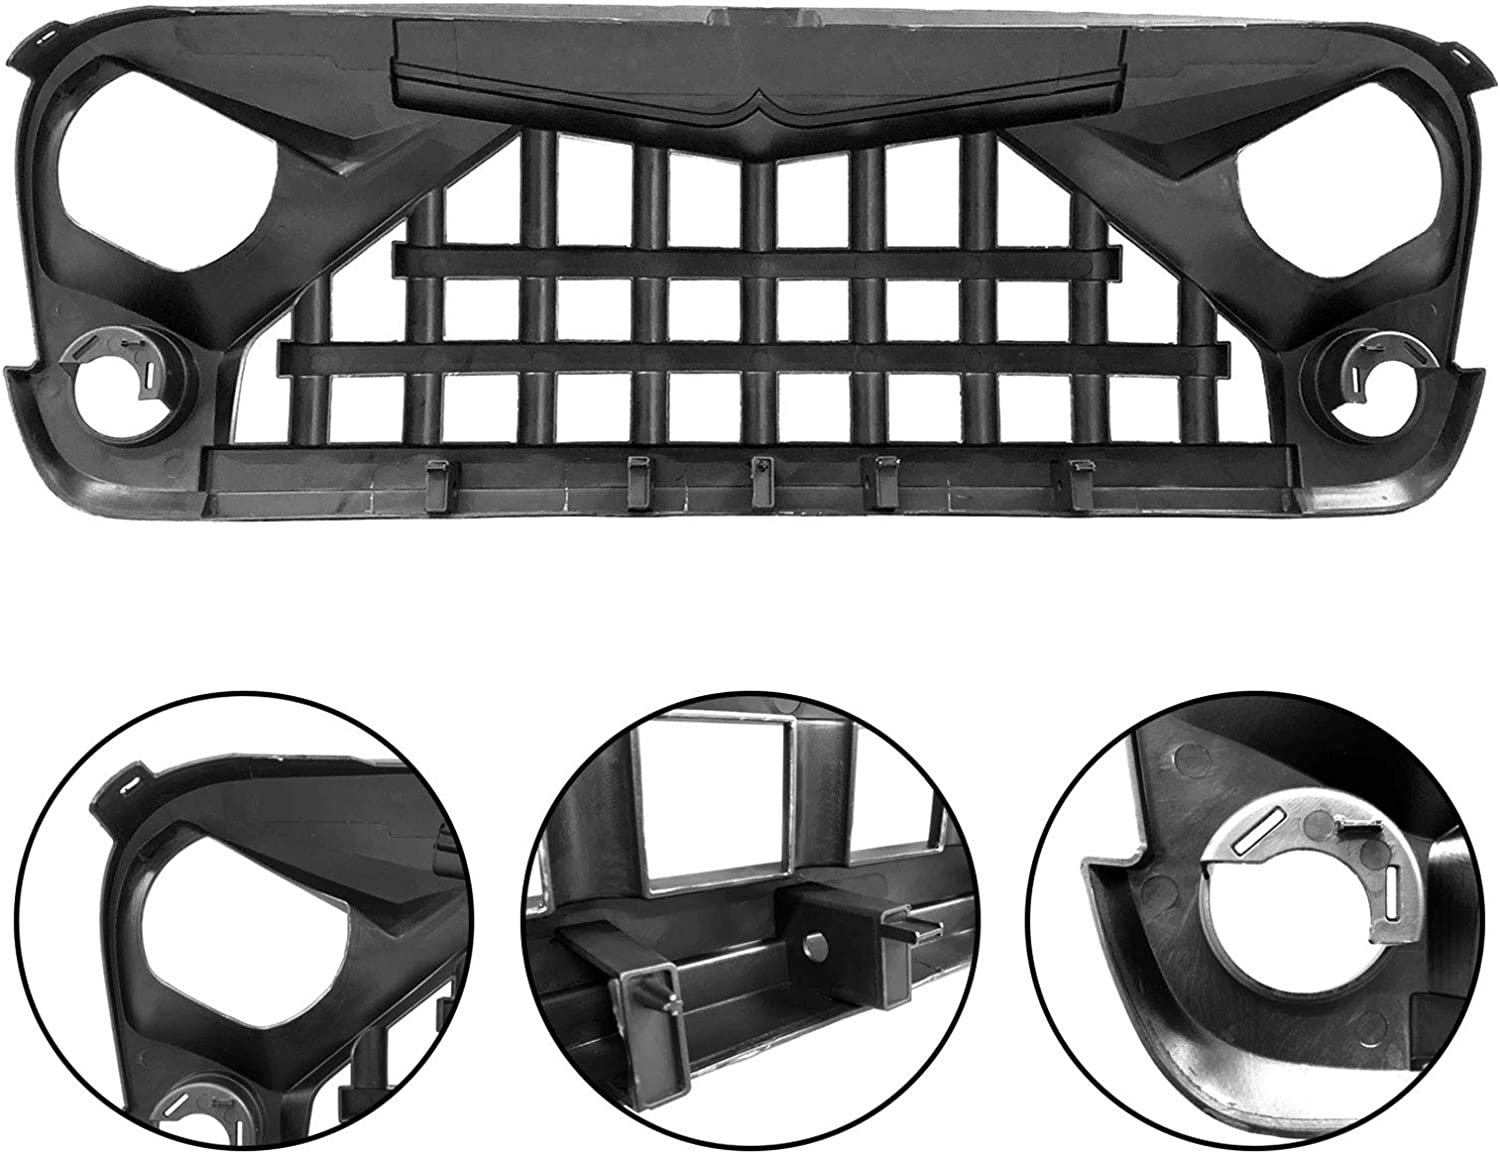 IPARTS Front Grille for Jeep Wrangler 2007-2018 Rubicon Sahara Sport JK JKU Matte Black Warrior Style